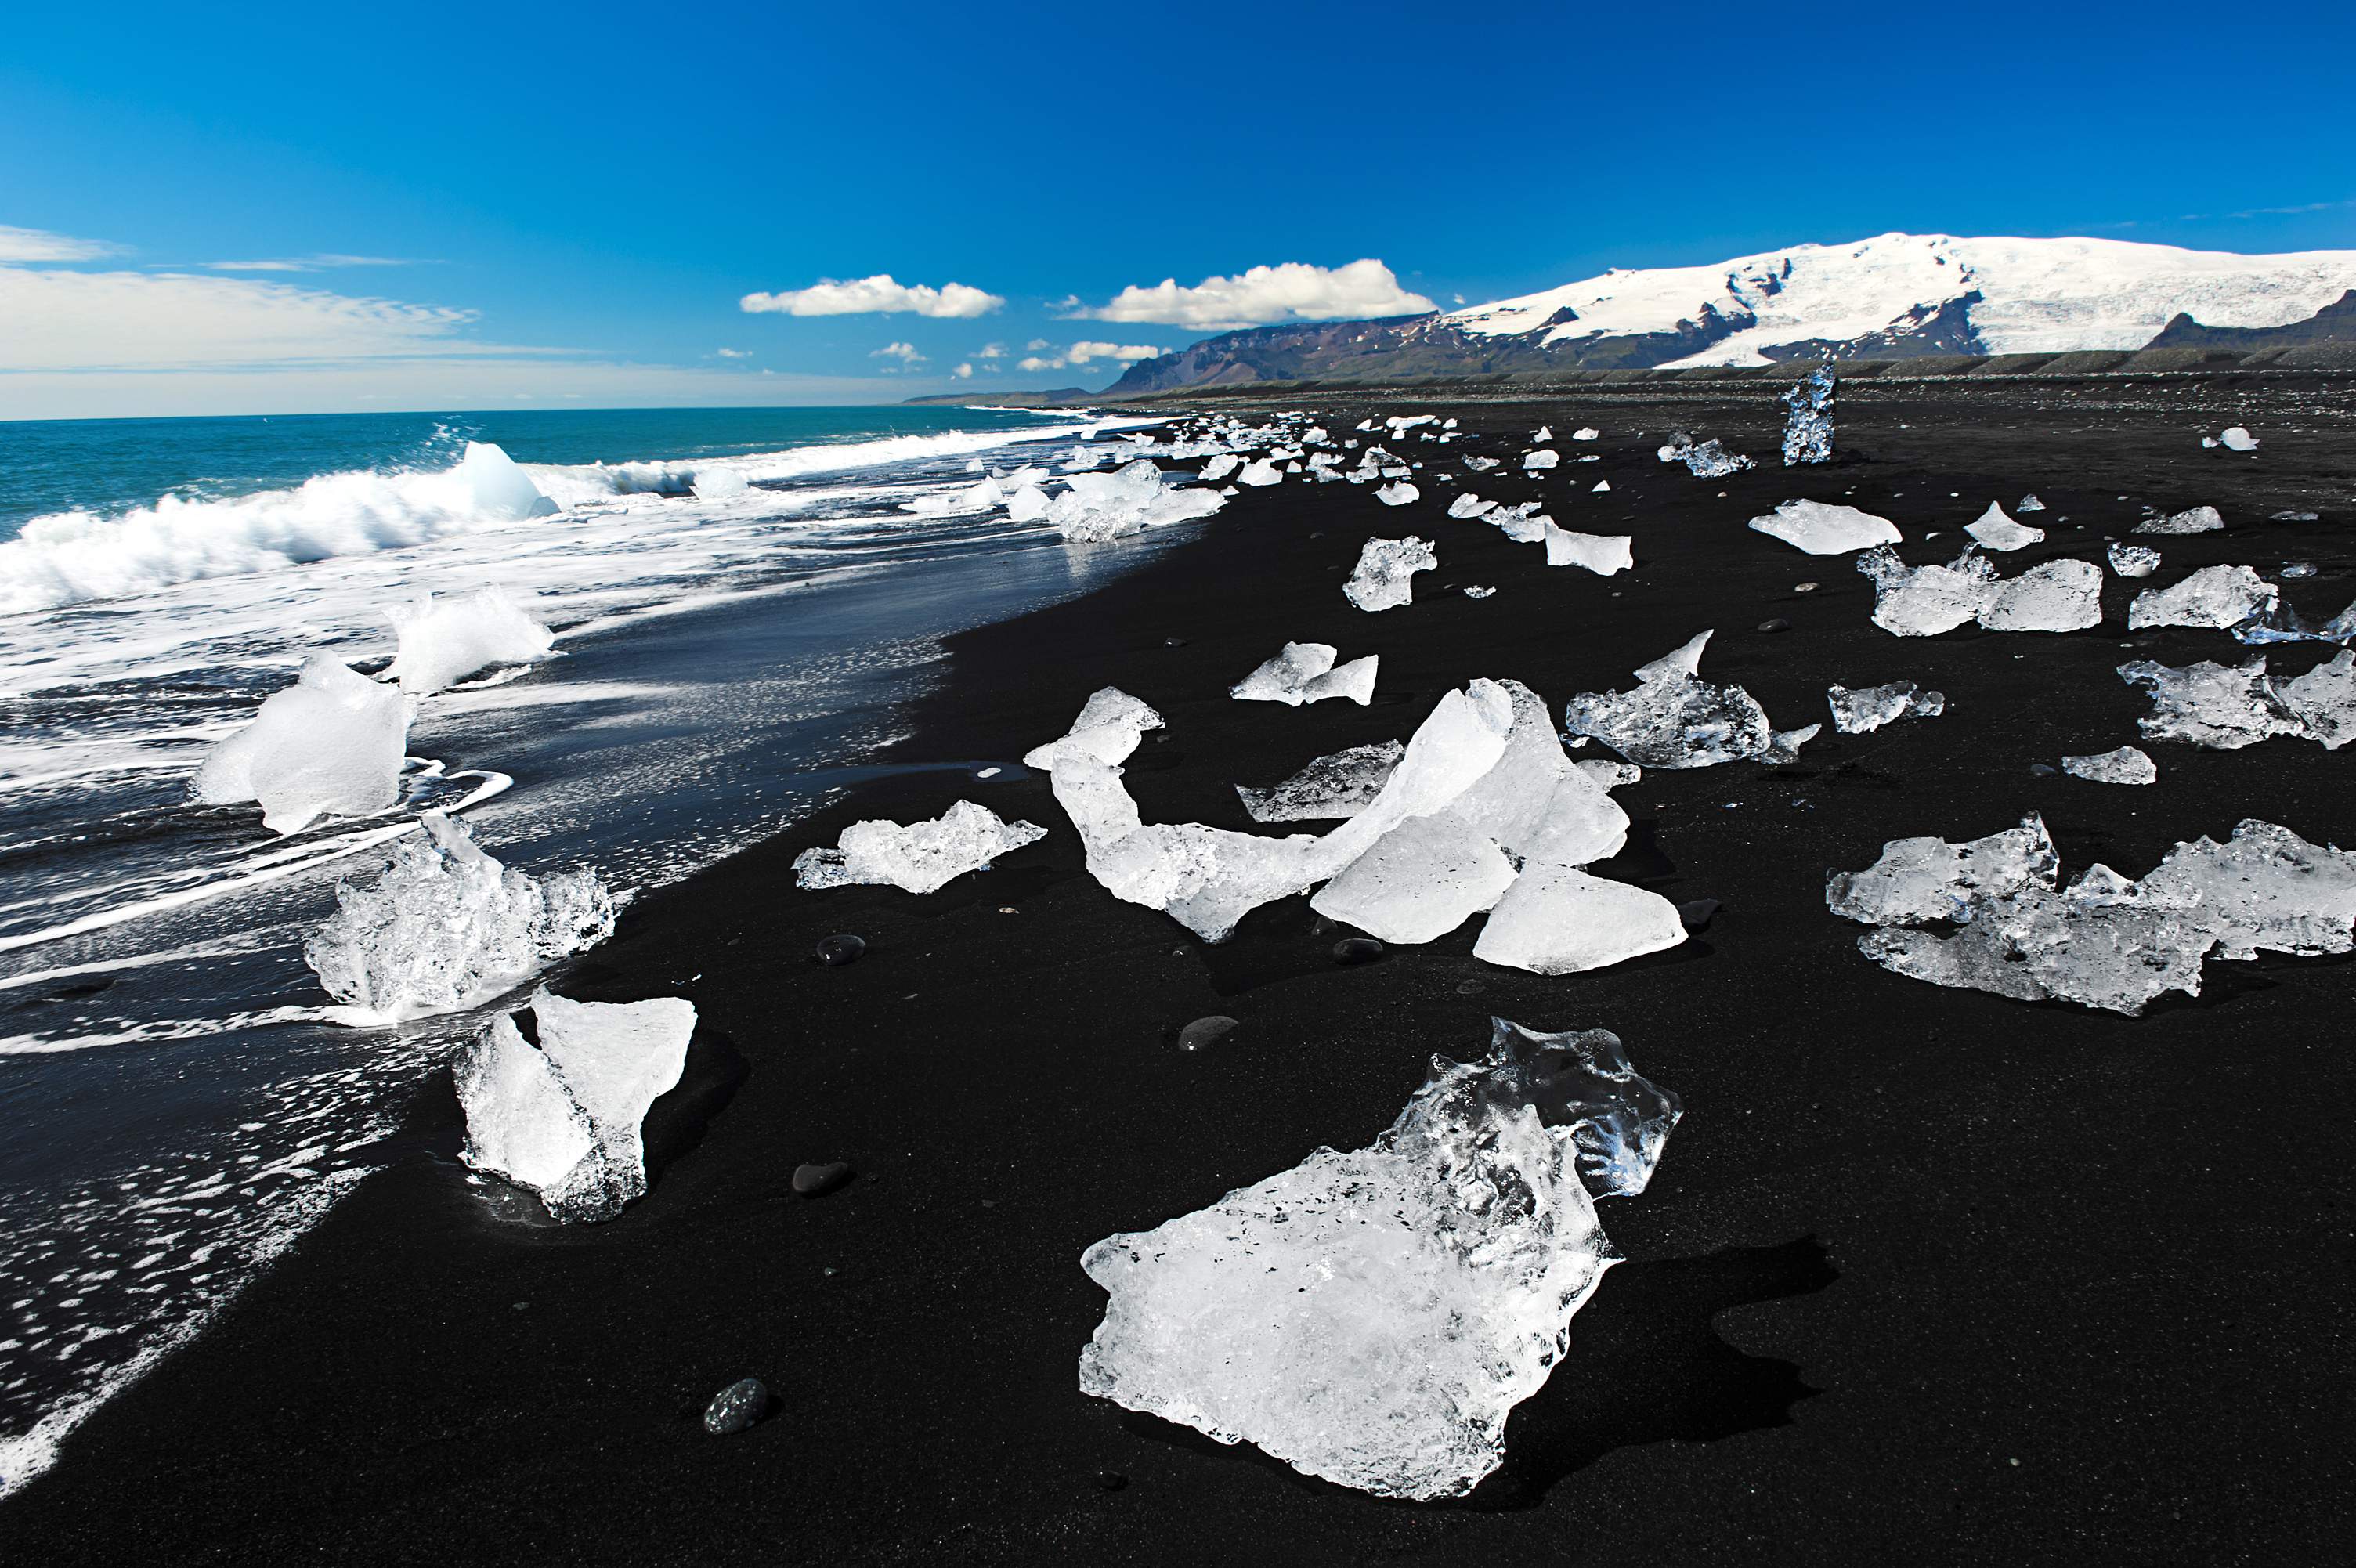 White icebergs contrast black sand sharply on the wonder known as the Diamond Beach on the South Coast of Iceland.